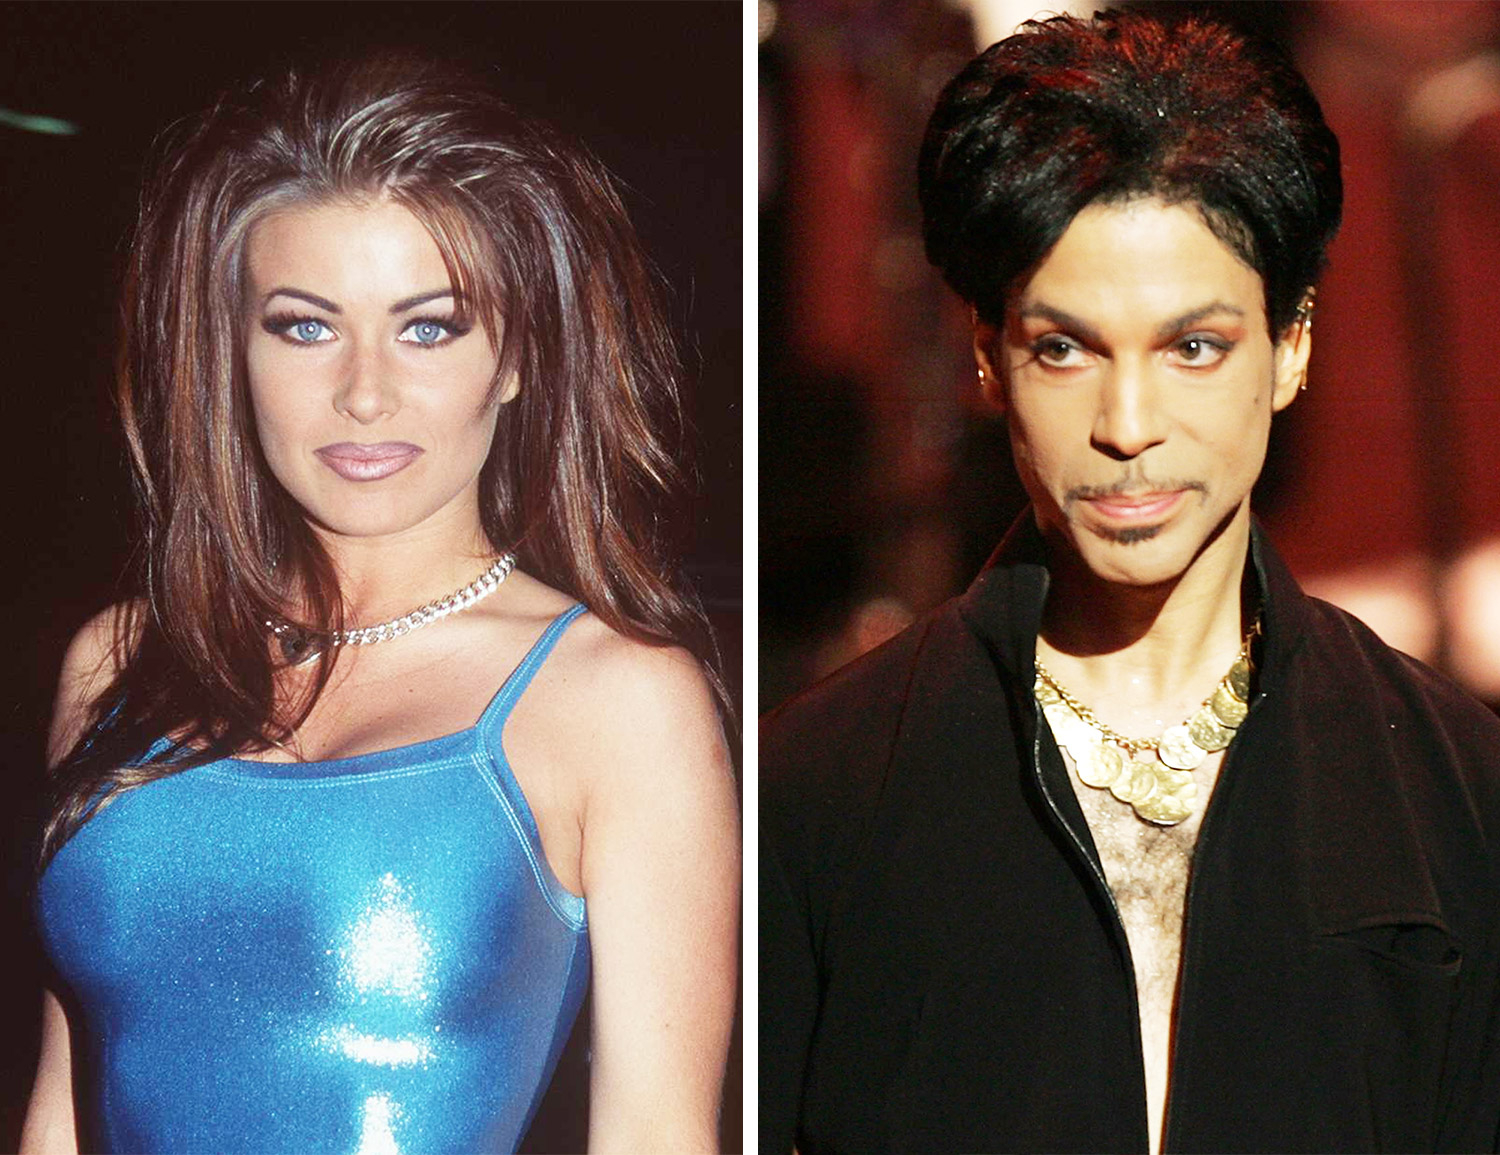 Carmen Electra and Prince